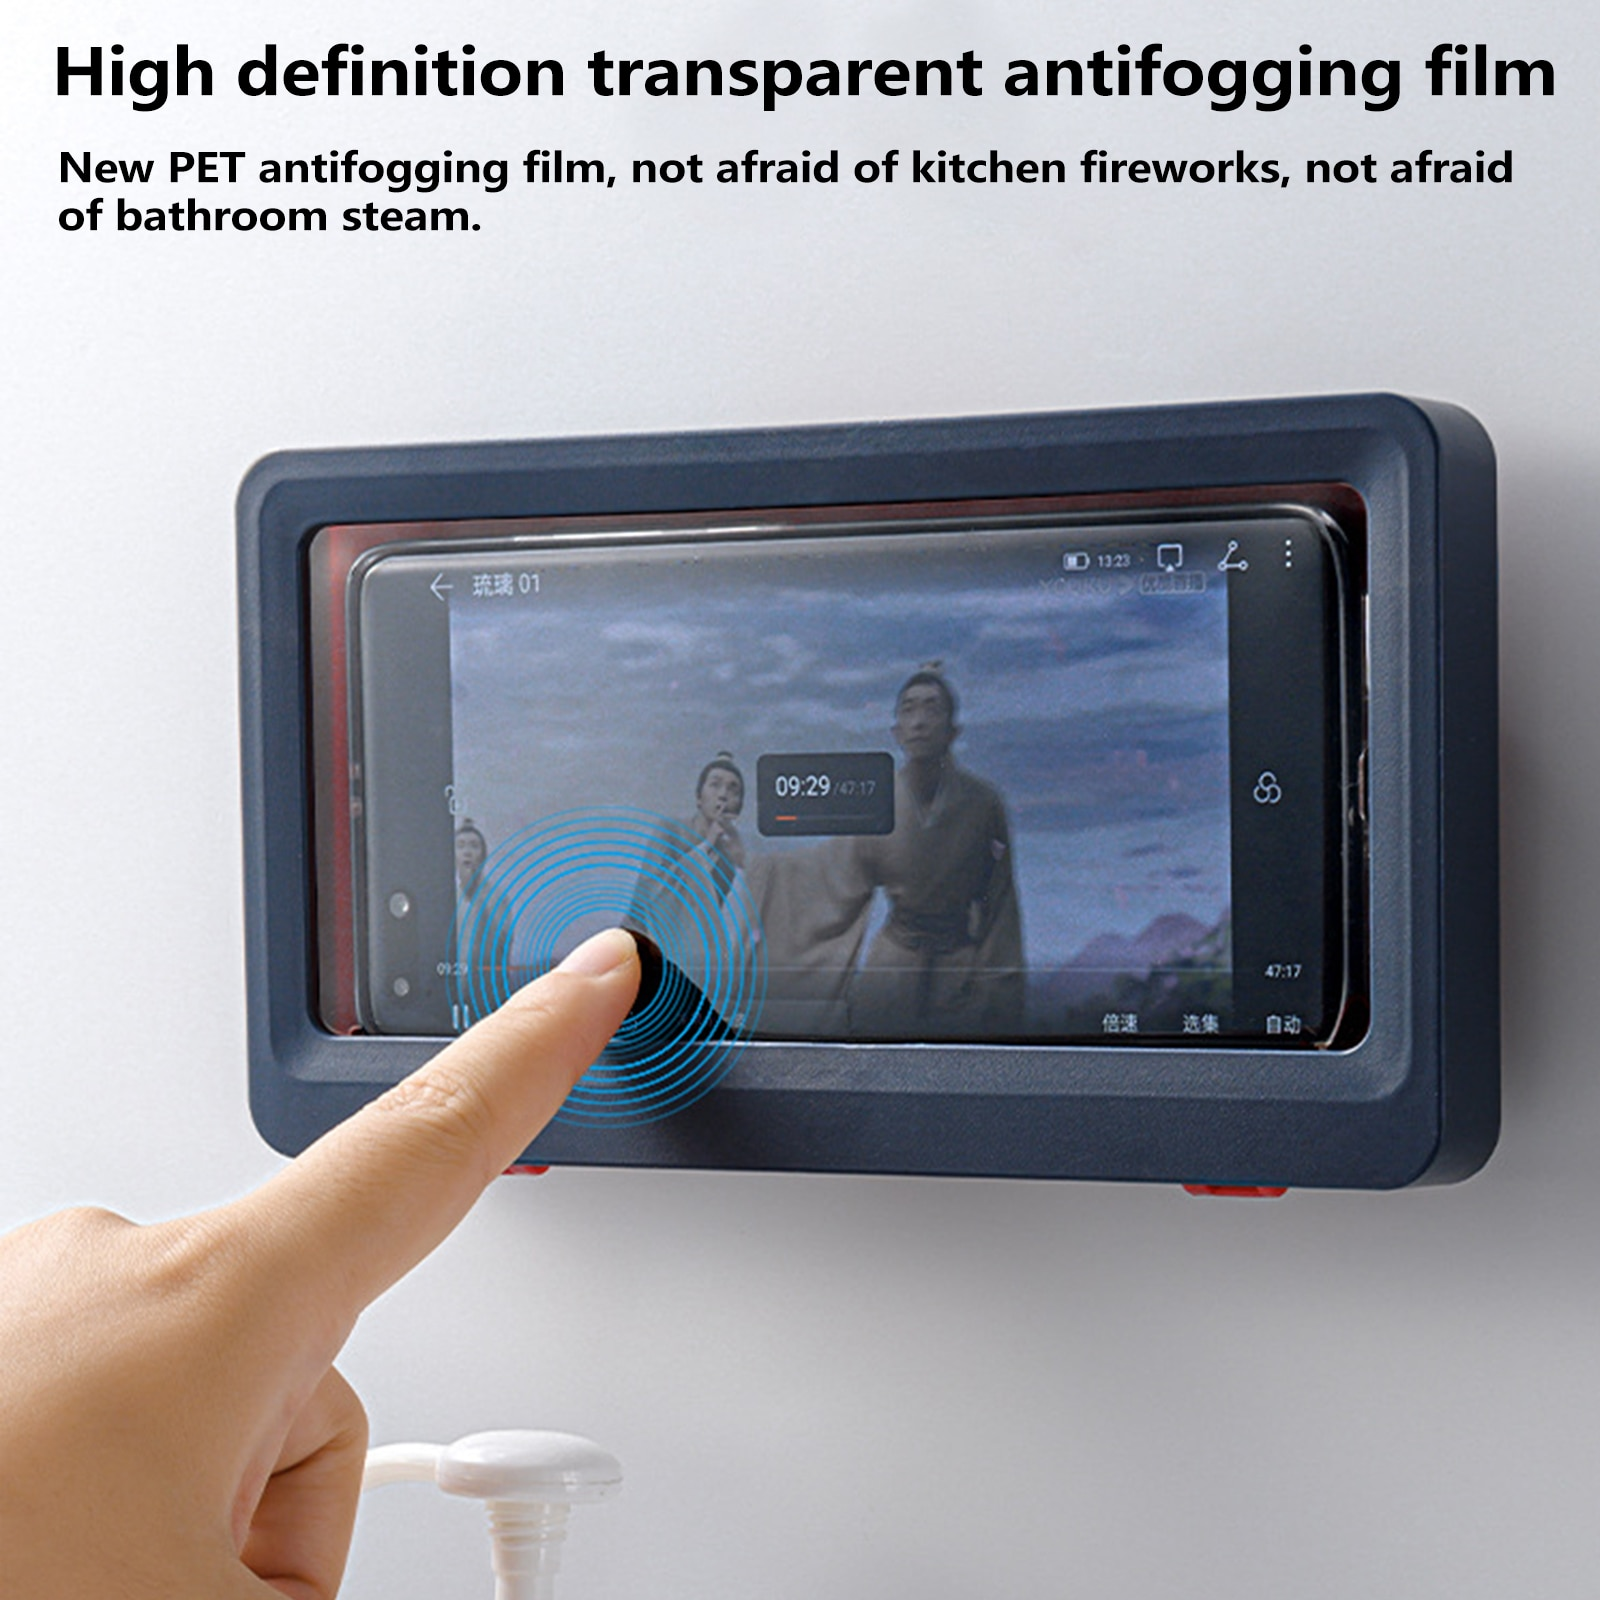 Liner Tablet Or Phone Holder Waterproof Case Box Wall Mounted All Covered Mobile Phone Shelves Self-Adhesive Shower Accessories